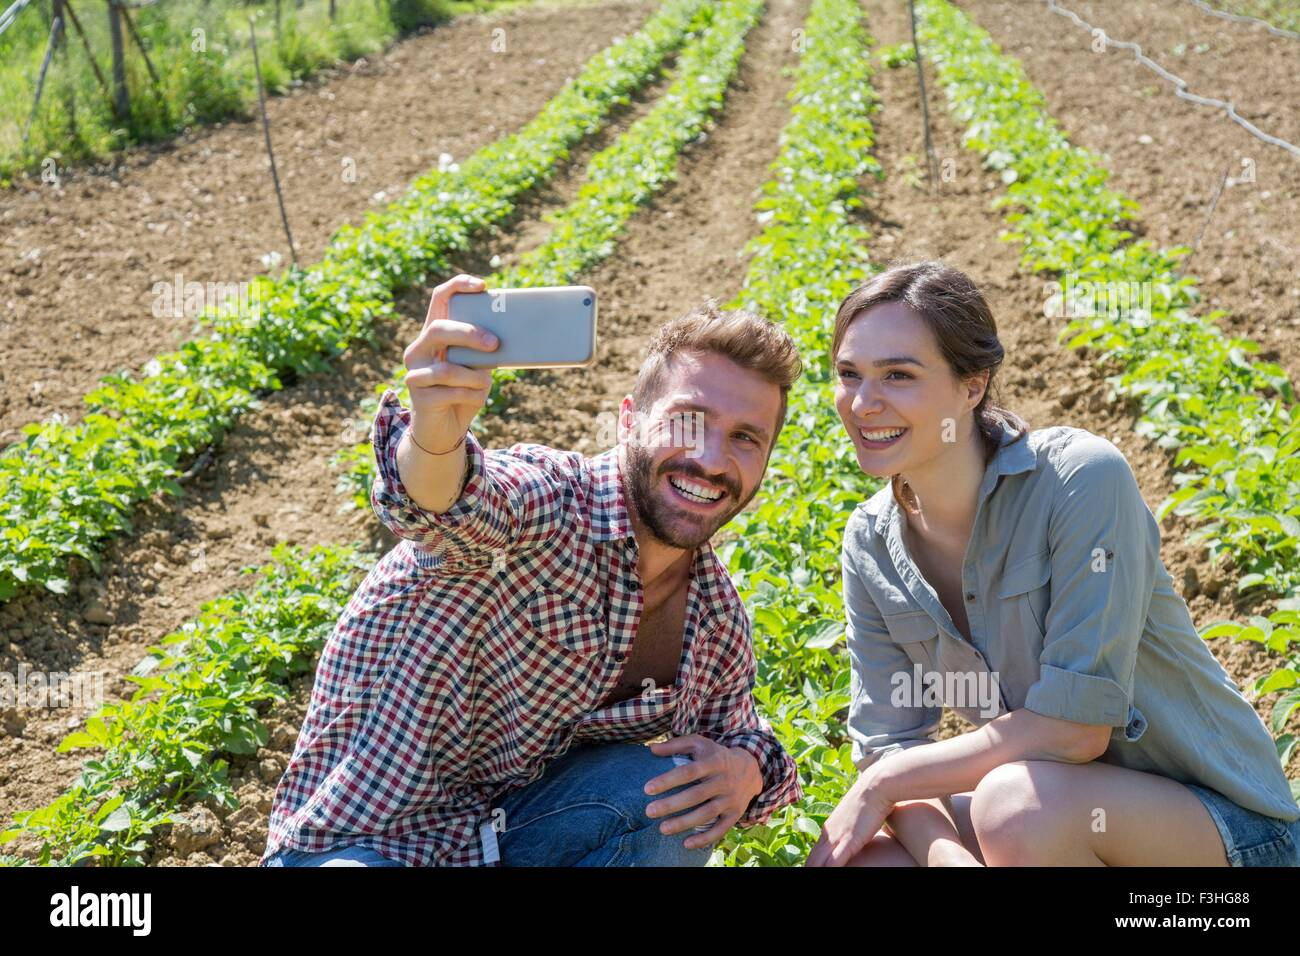 Young couple crouched in vegetable garden using smartphone to take selfie - Stock Image